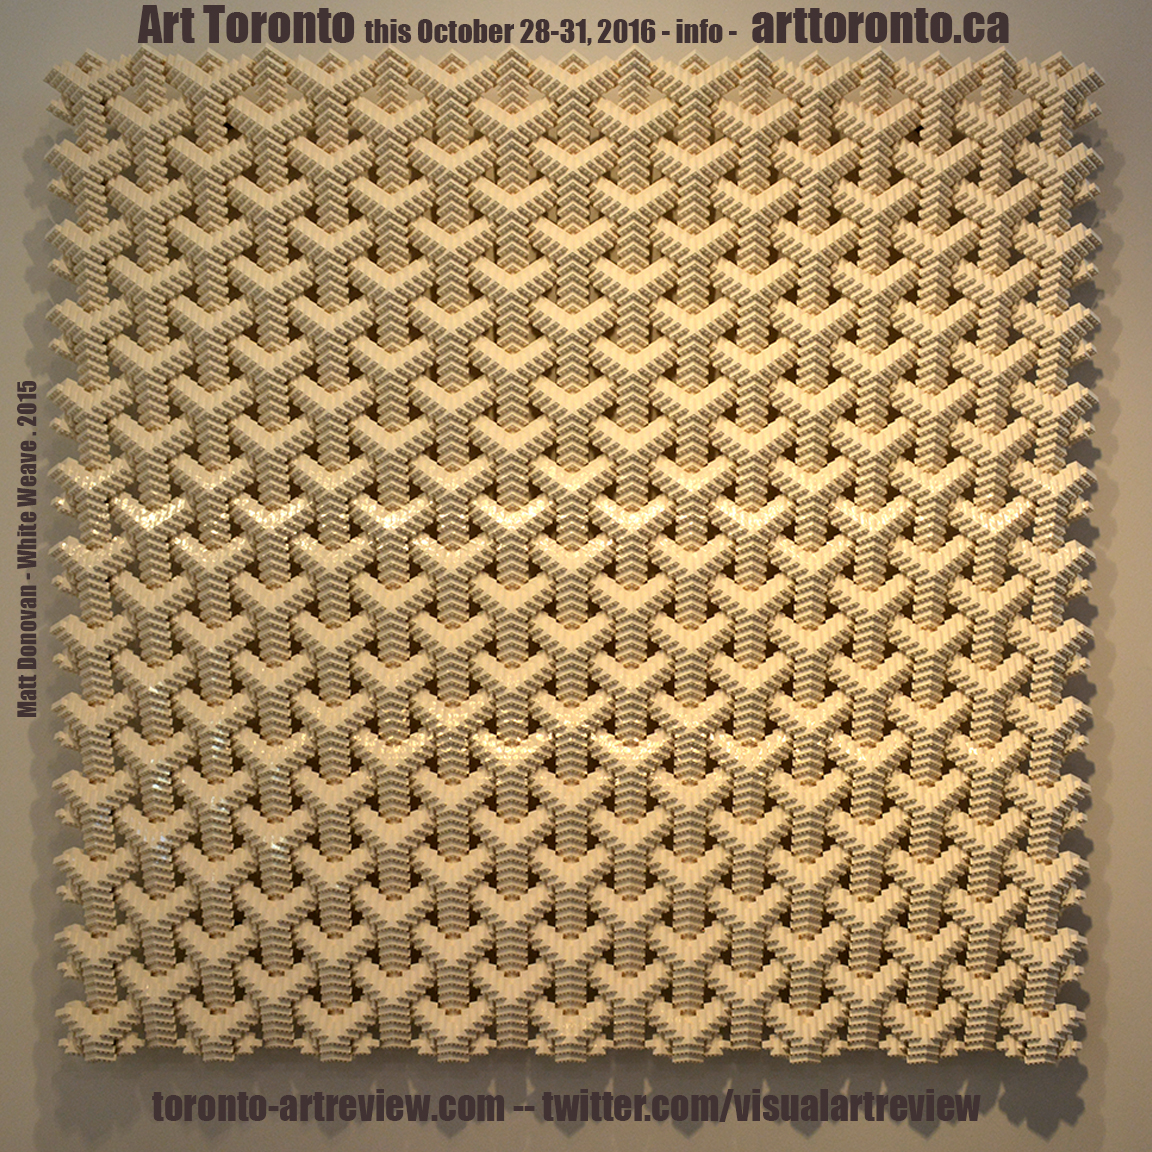 2016, art, Art Design, art galleries, art reviews, Art Toronto, Art Toronto Oct 28-31, Artist Project, ArtToronto14, Artwork, canadian art, canadianart, Drawing, exhibition, Illustration, Painting, pictures, toronto, toronto art, toronto art galleries, toronto art reviews, toronto exhibition, visual art, Visual Artist